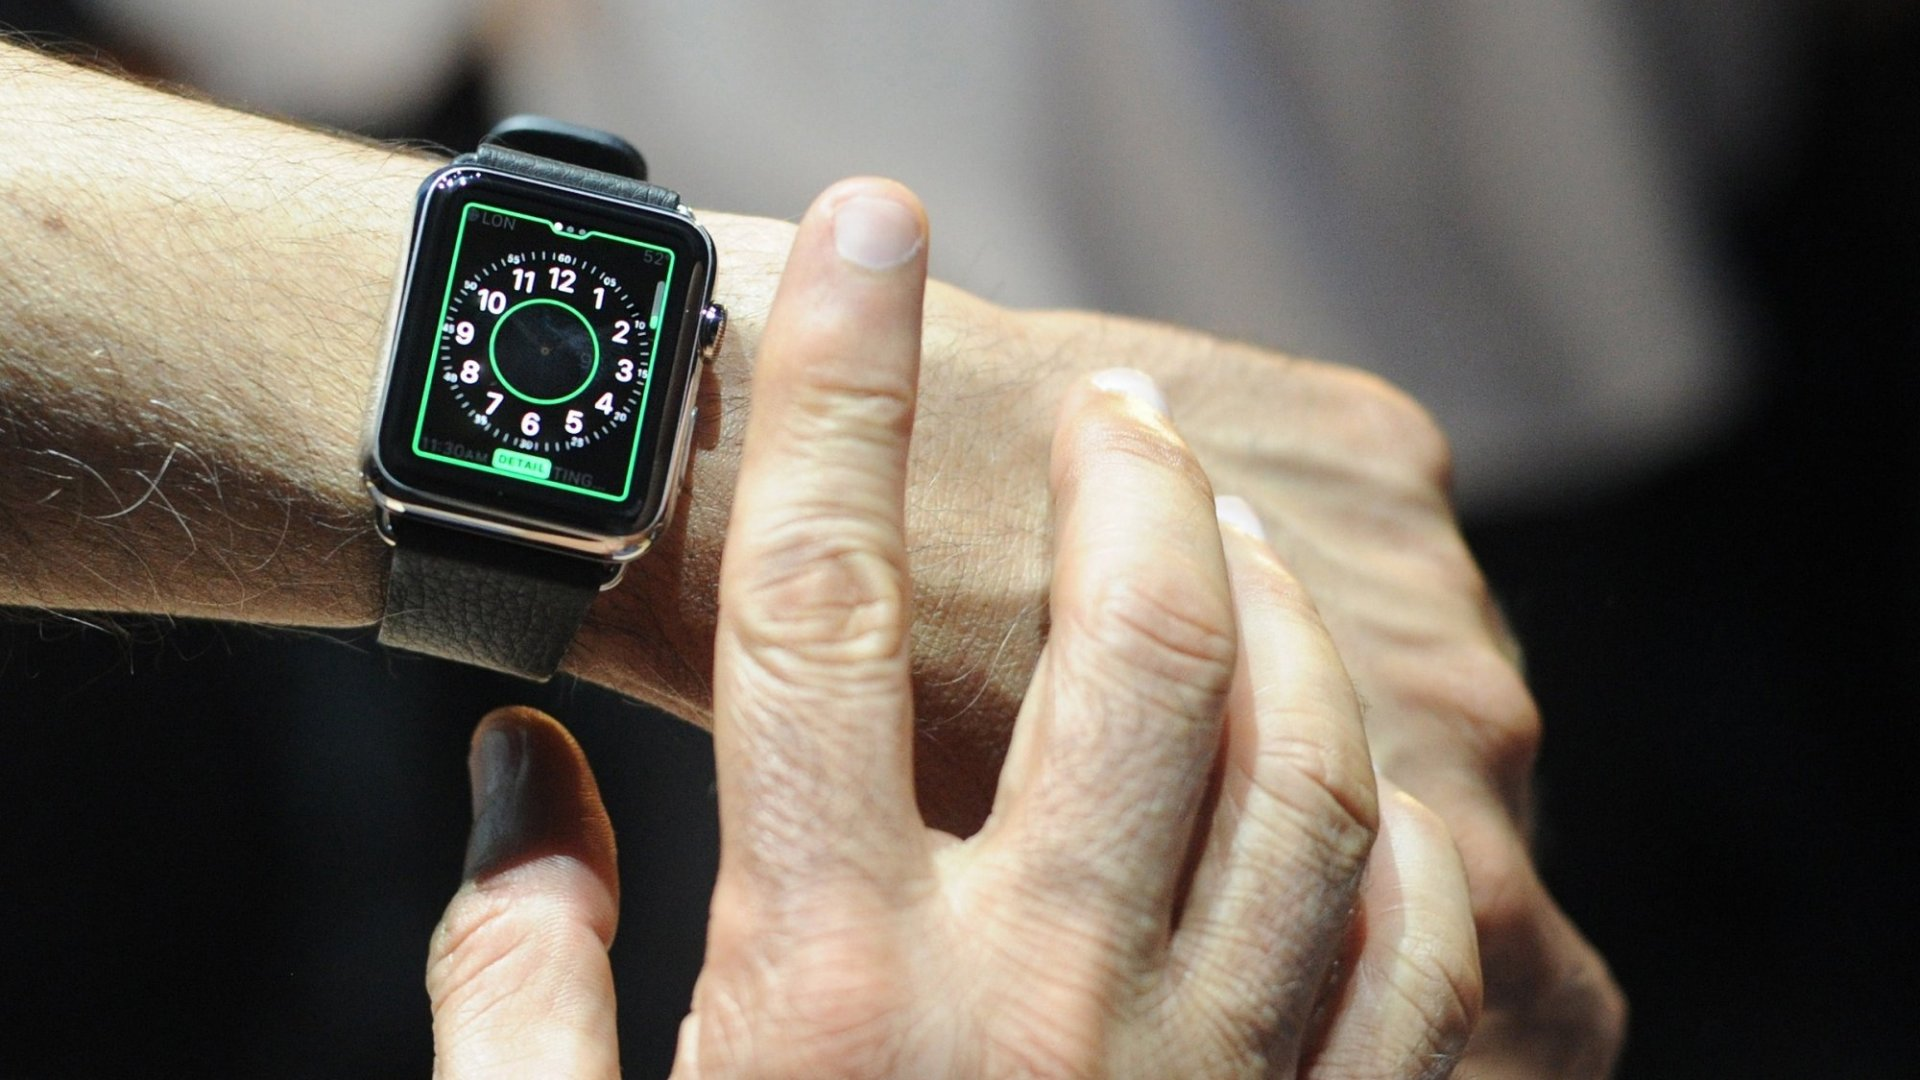 How Does the Apple Watch Compare With Its Rivals?